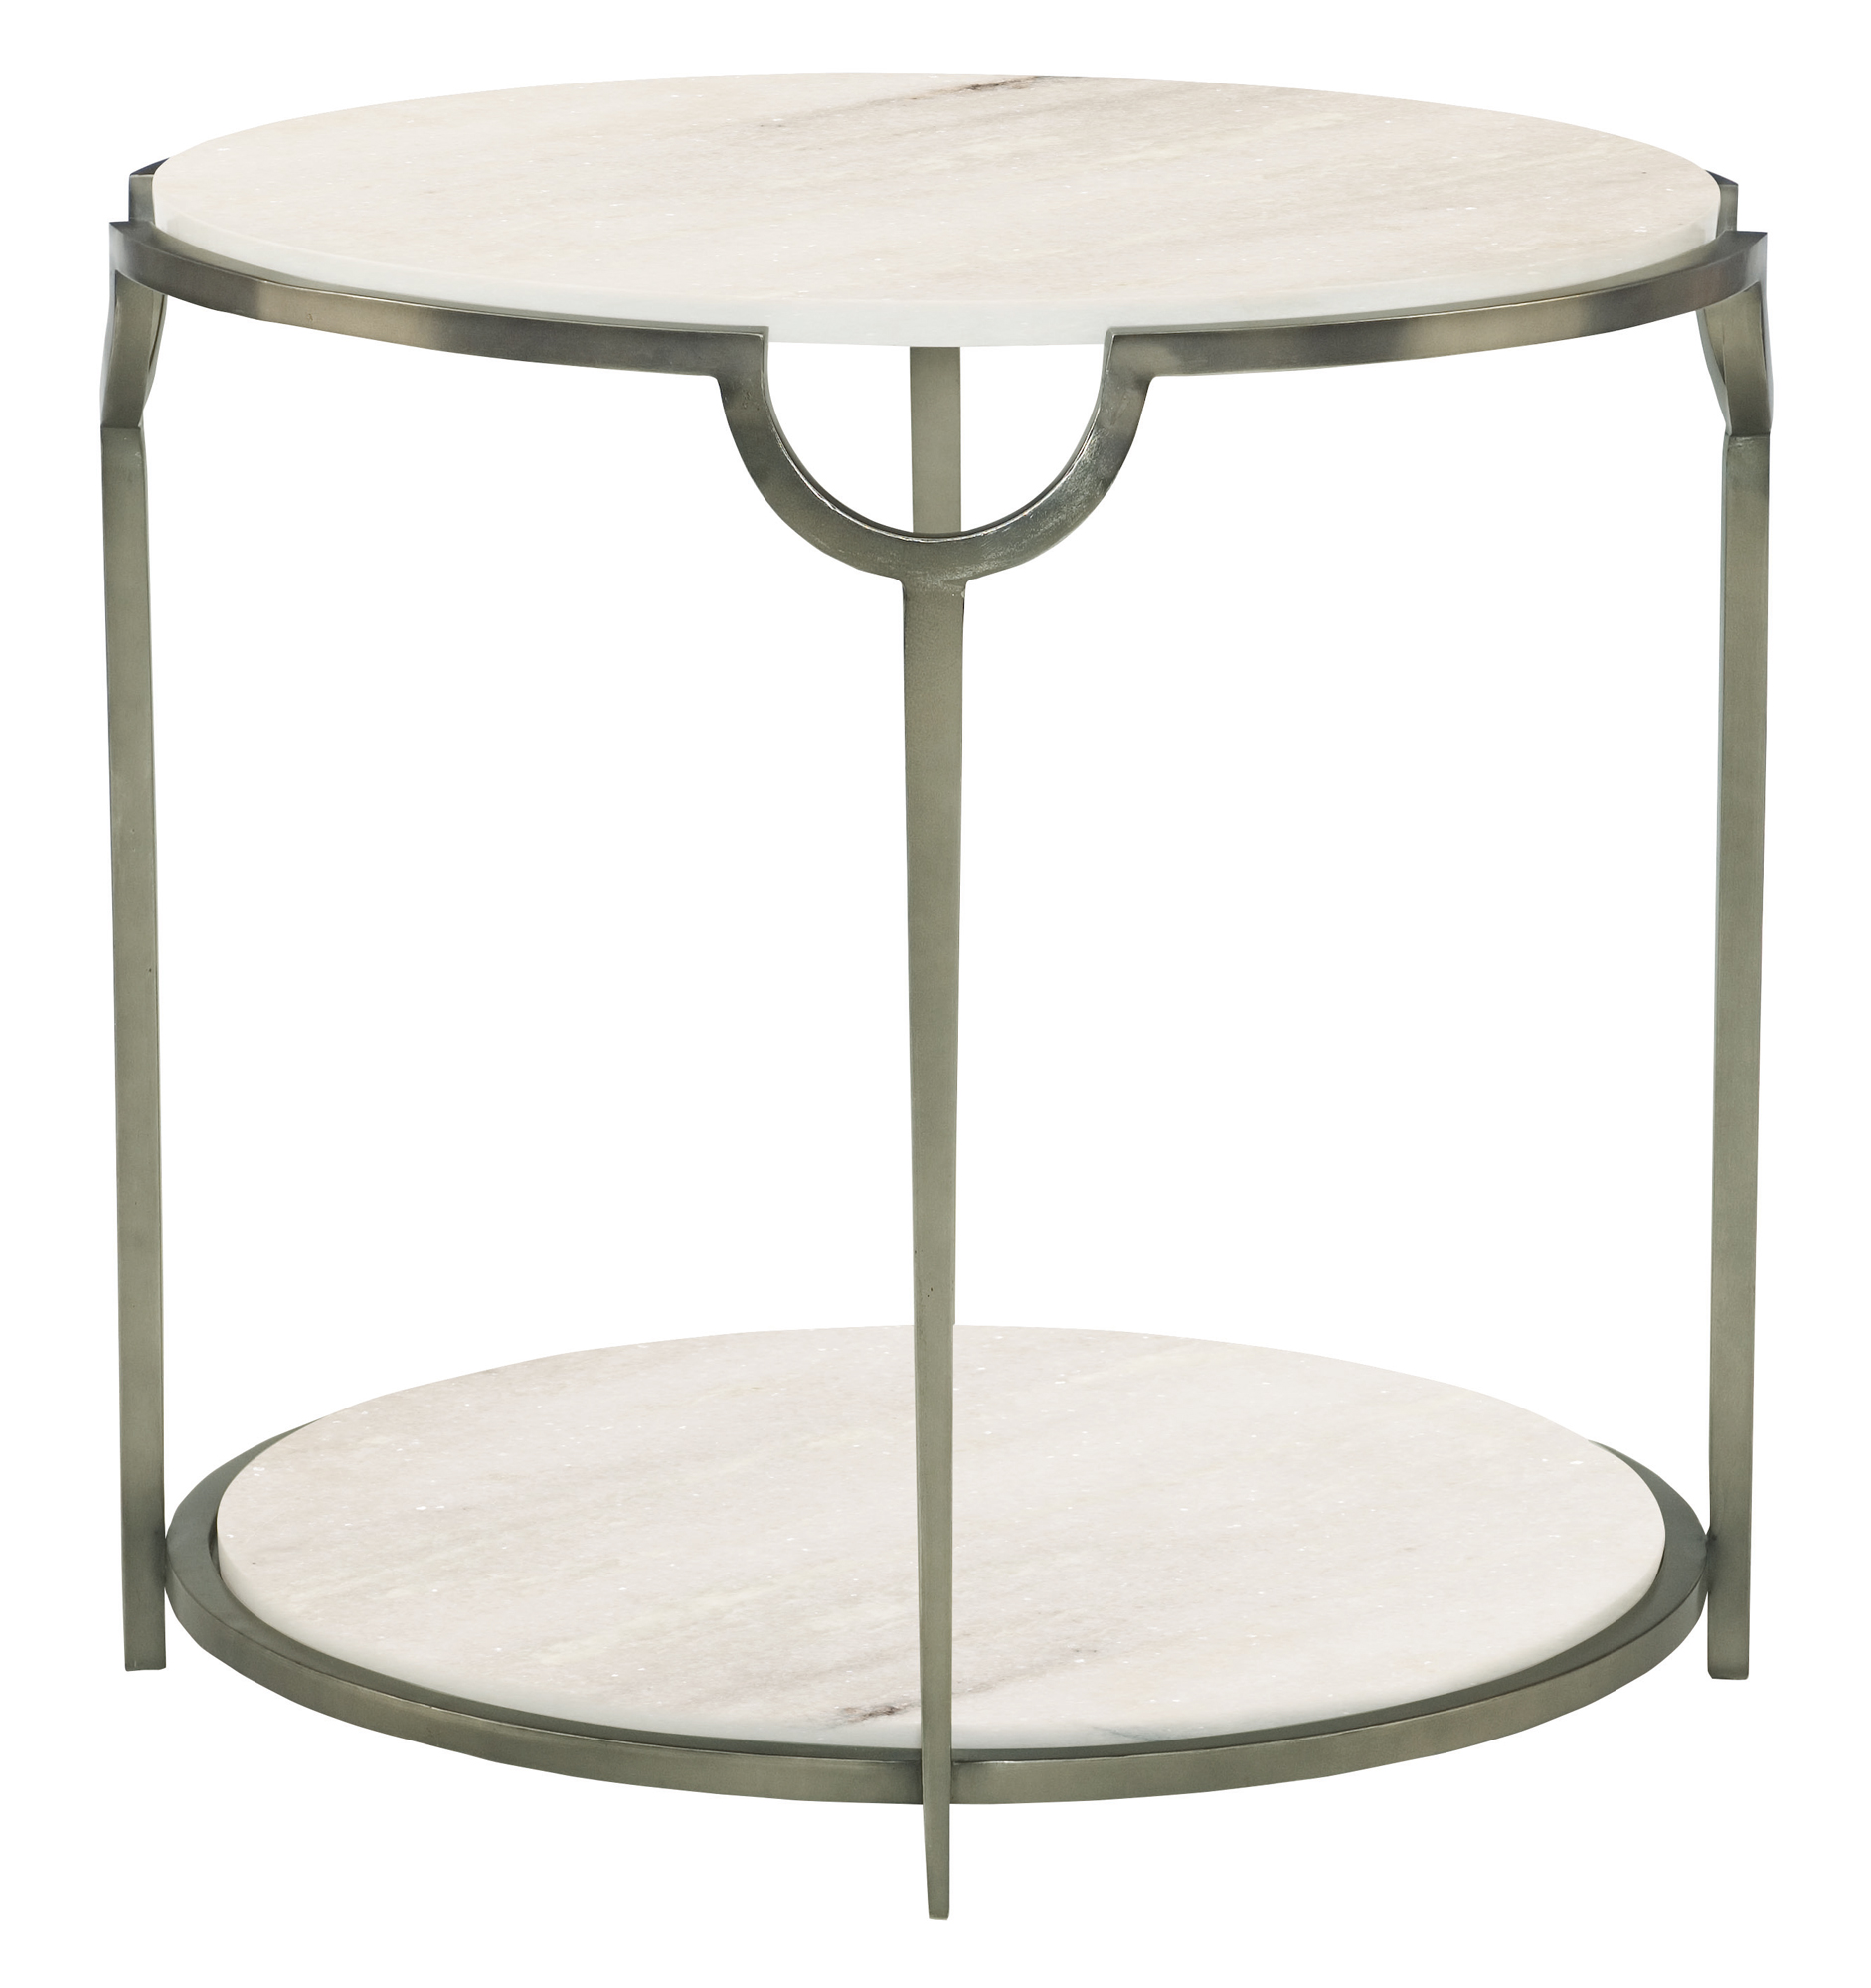 round metal end table bernhardt bedroom tables rug for dark brown couch when does laura ashley off distressed coffee lamps and floor small side replace glass outdoor best pillows